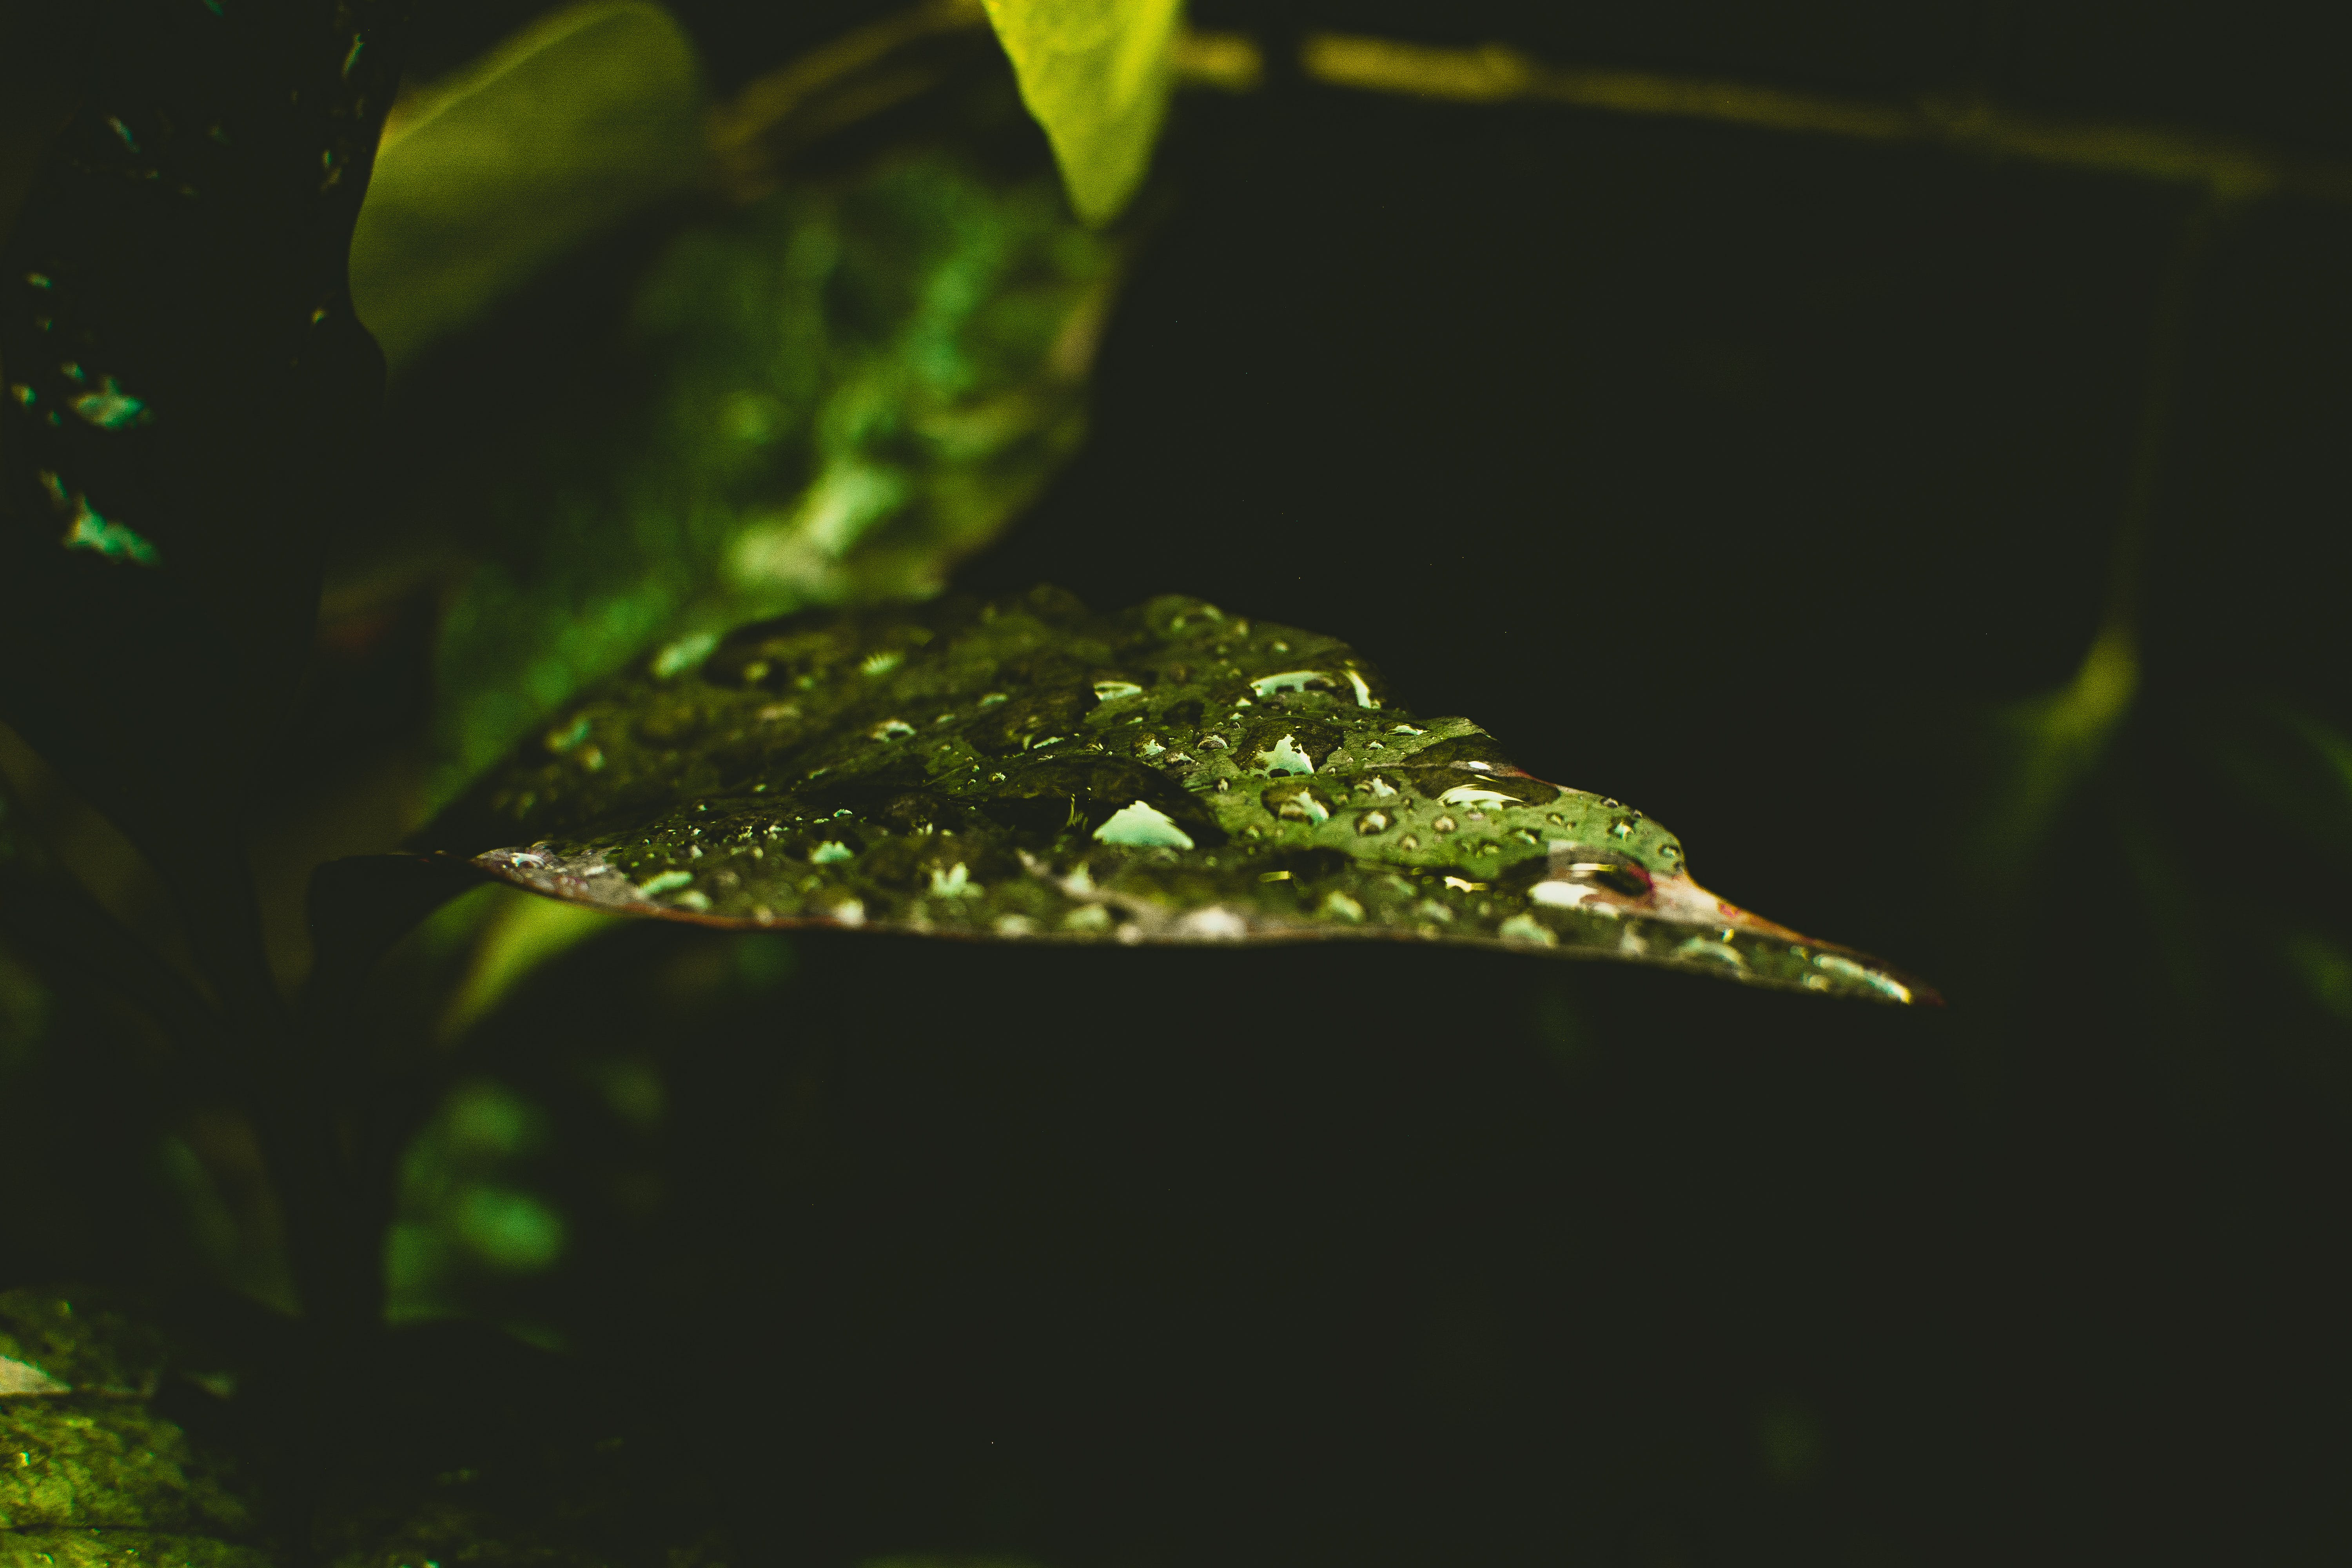 Water on Top of Green Leaf